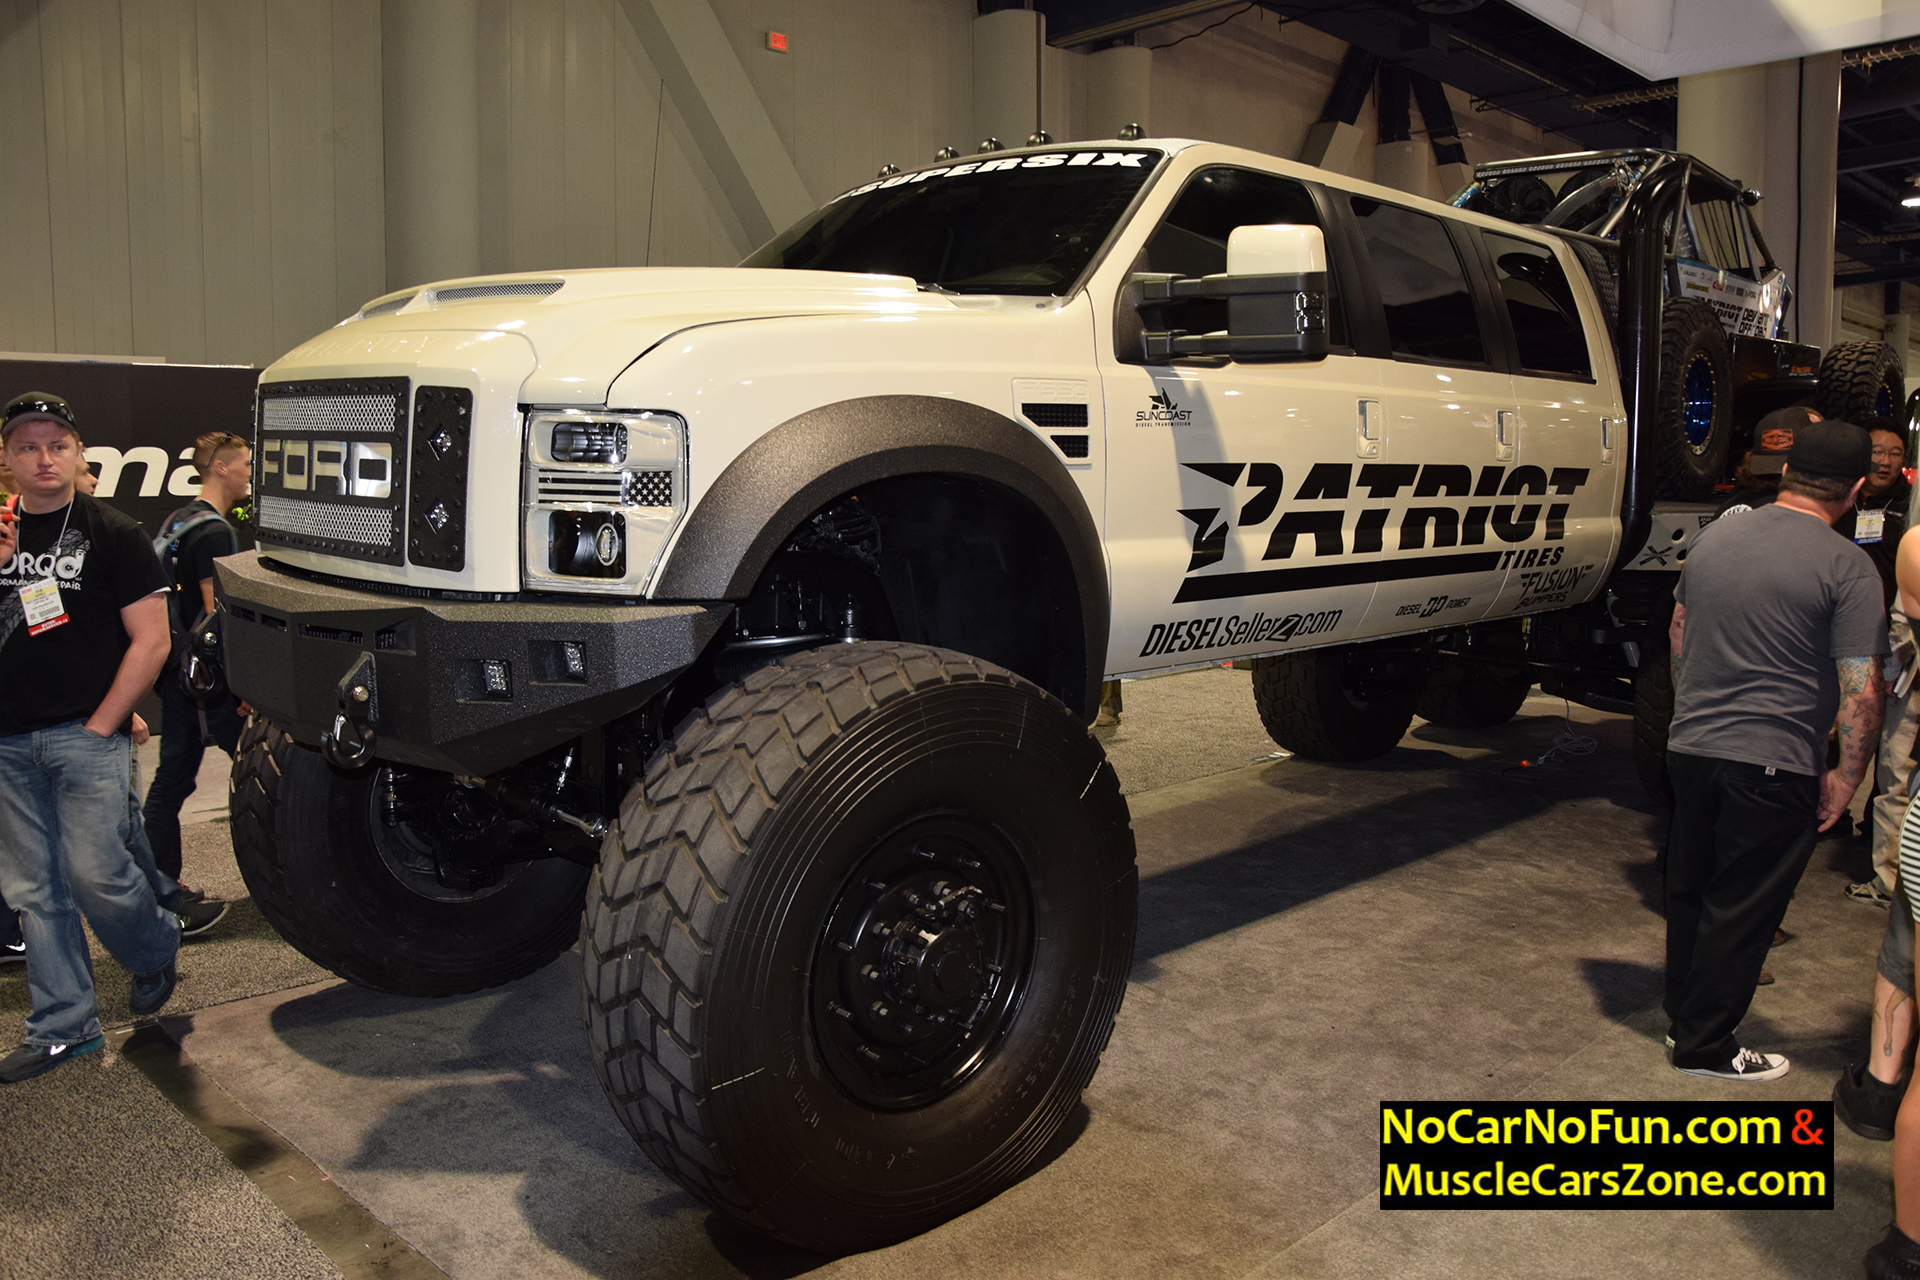 Huge 6 Door Ford Truck By Dieselsellerz With Buggy On Top